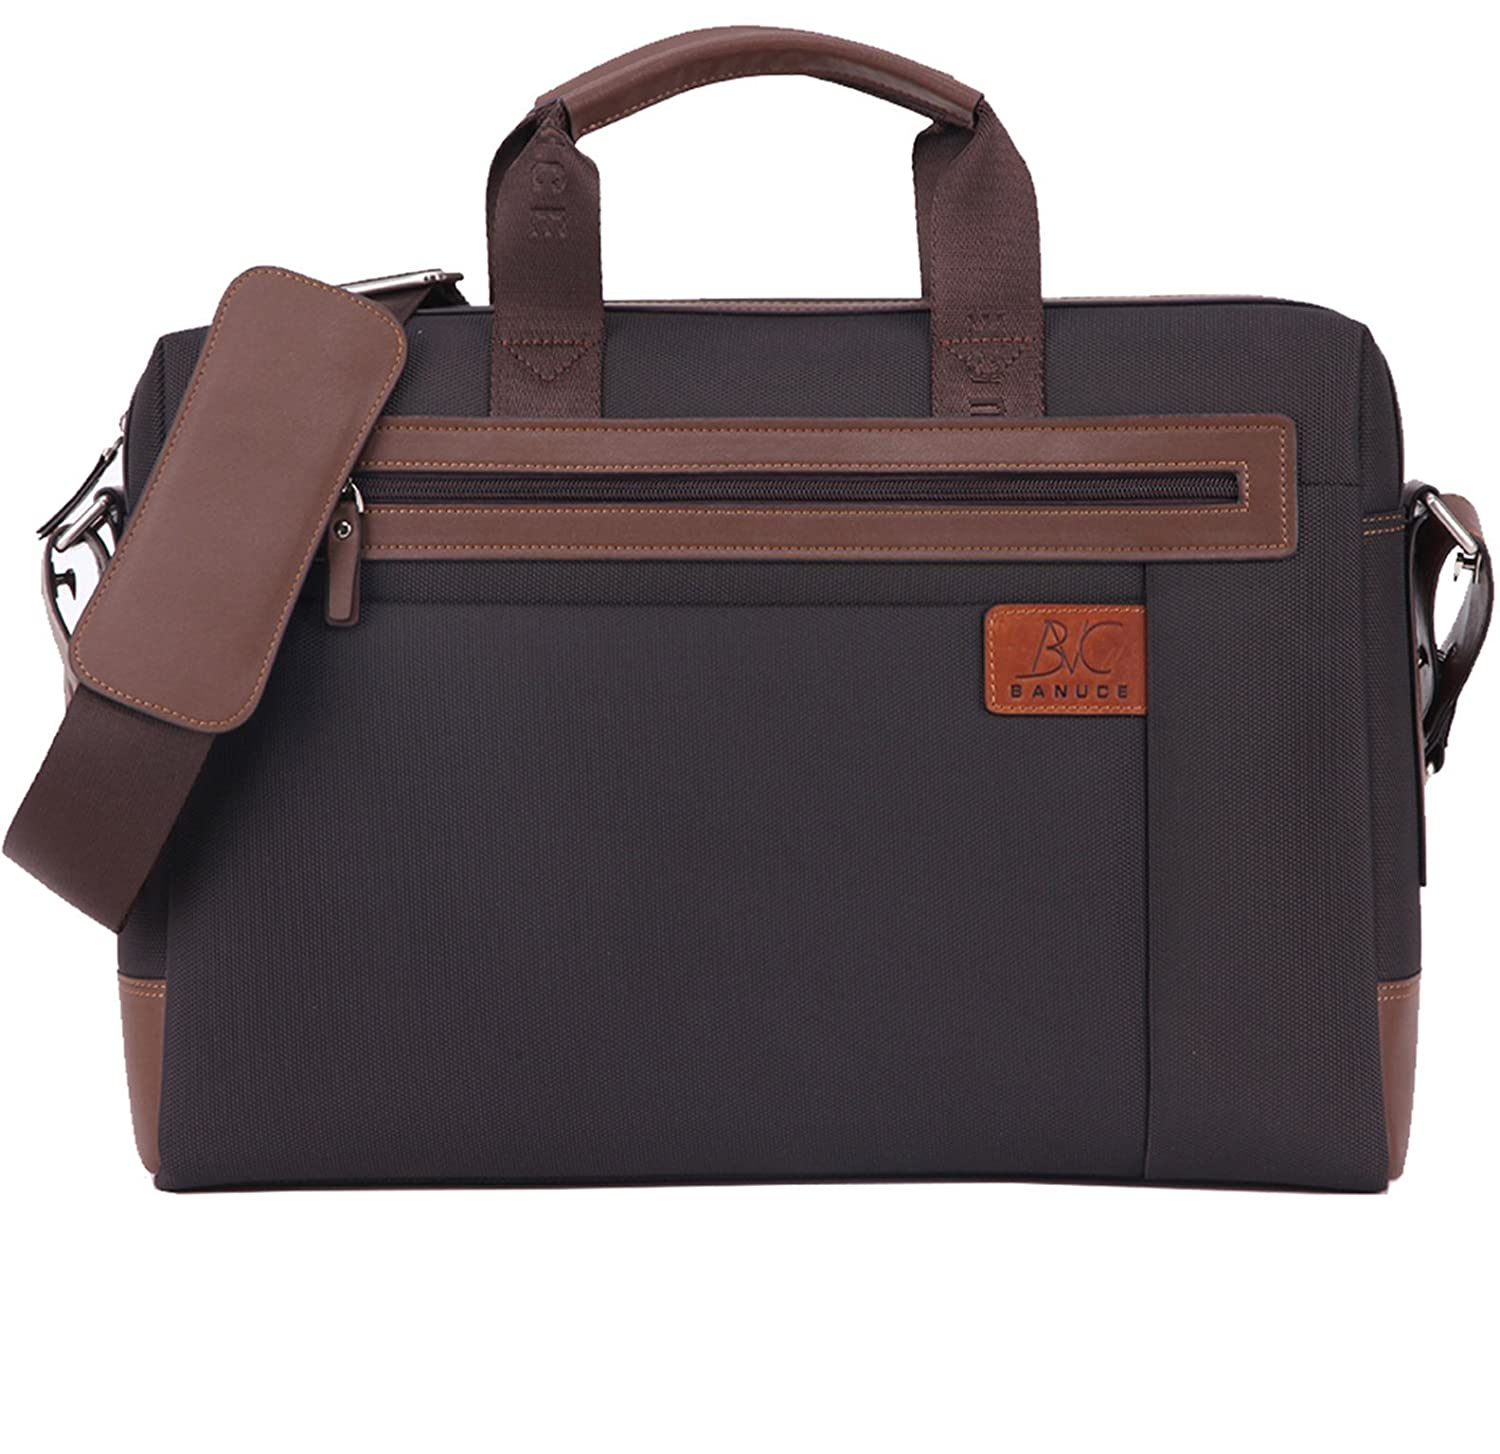 "Banuce RTXCXBM032-BK Men's Waterproof PU Leather Briefcase Shoulder Bags Attaches 14"" Laptop 60%OFF"